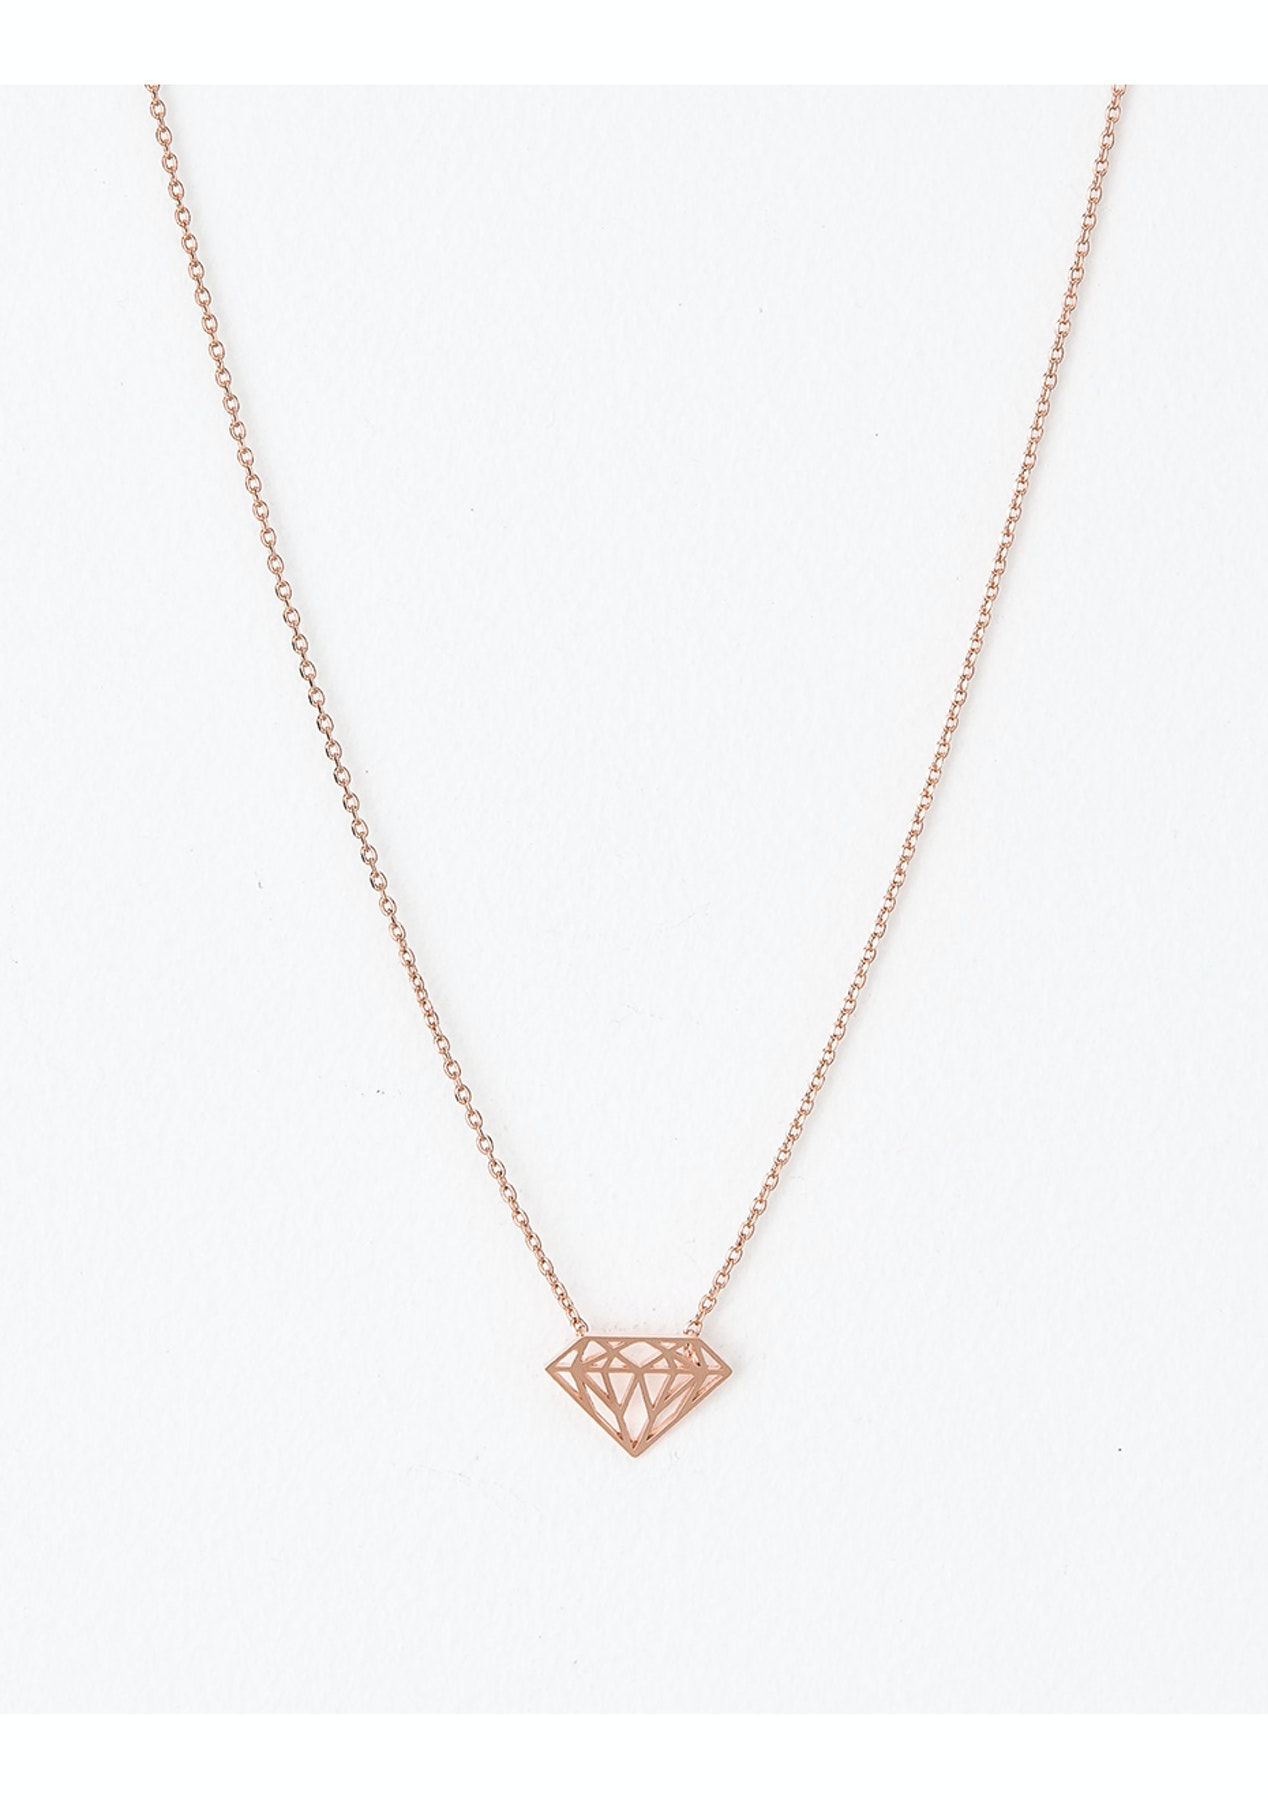 c739bf5eca7 Stella + Gemma - Necklace Diamond Rose Gold - Rose Gold - Free Shipping  Jewellery & More - Onceit